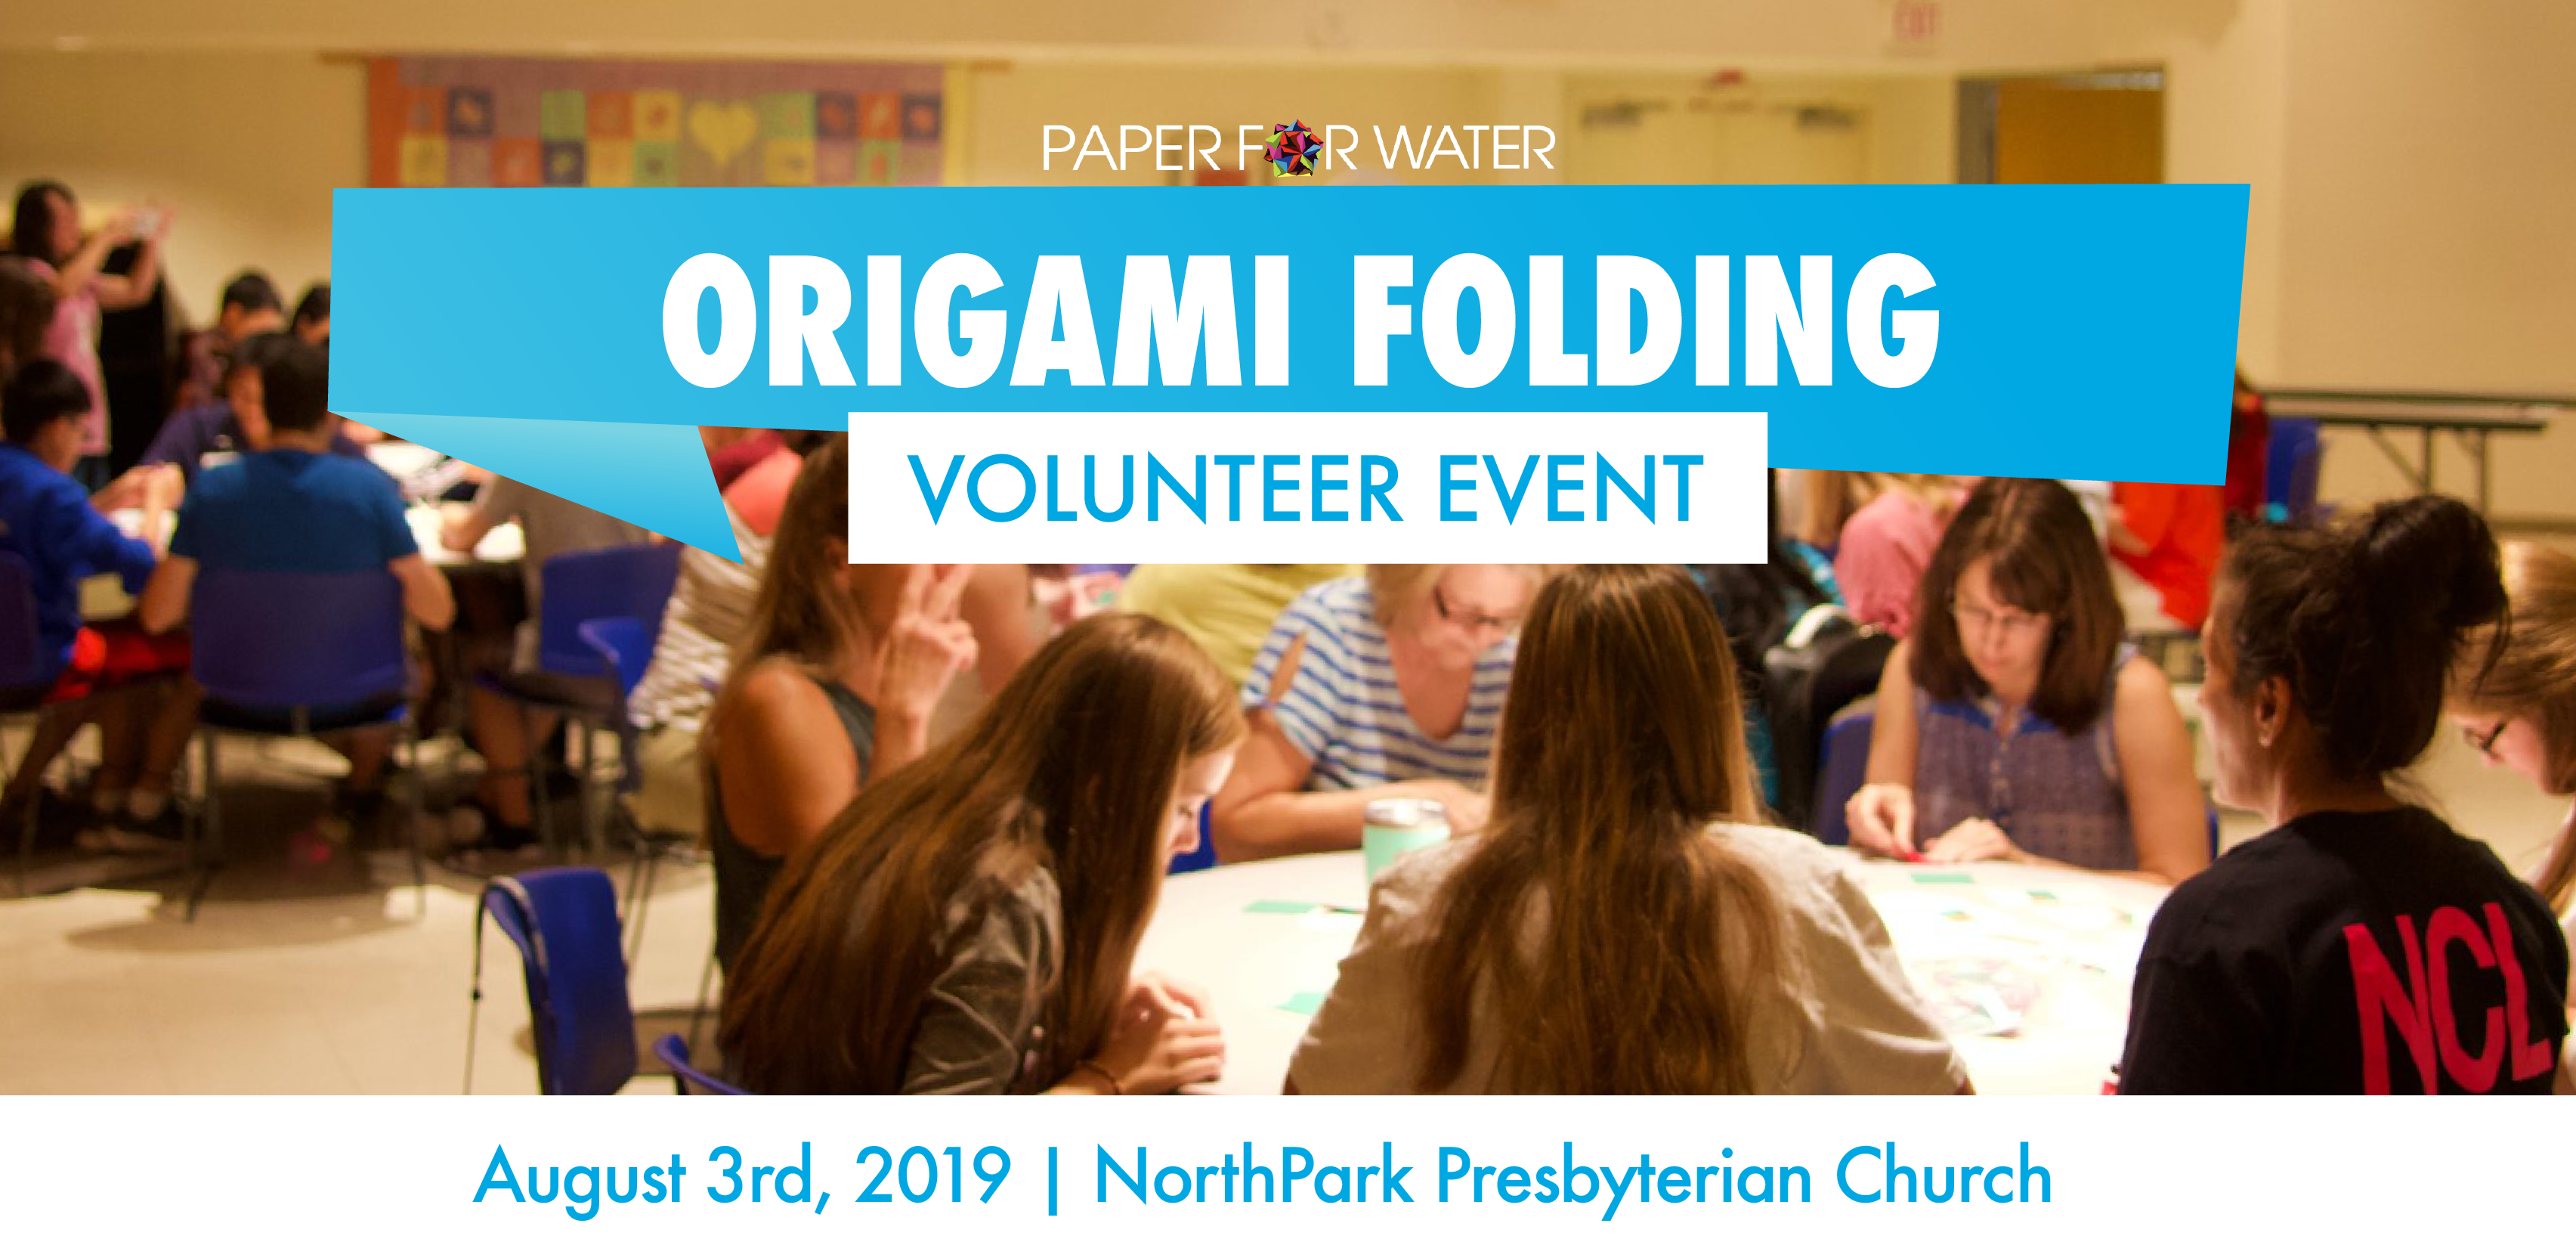 Origami folding volunteer event 08